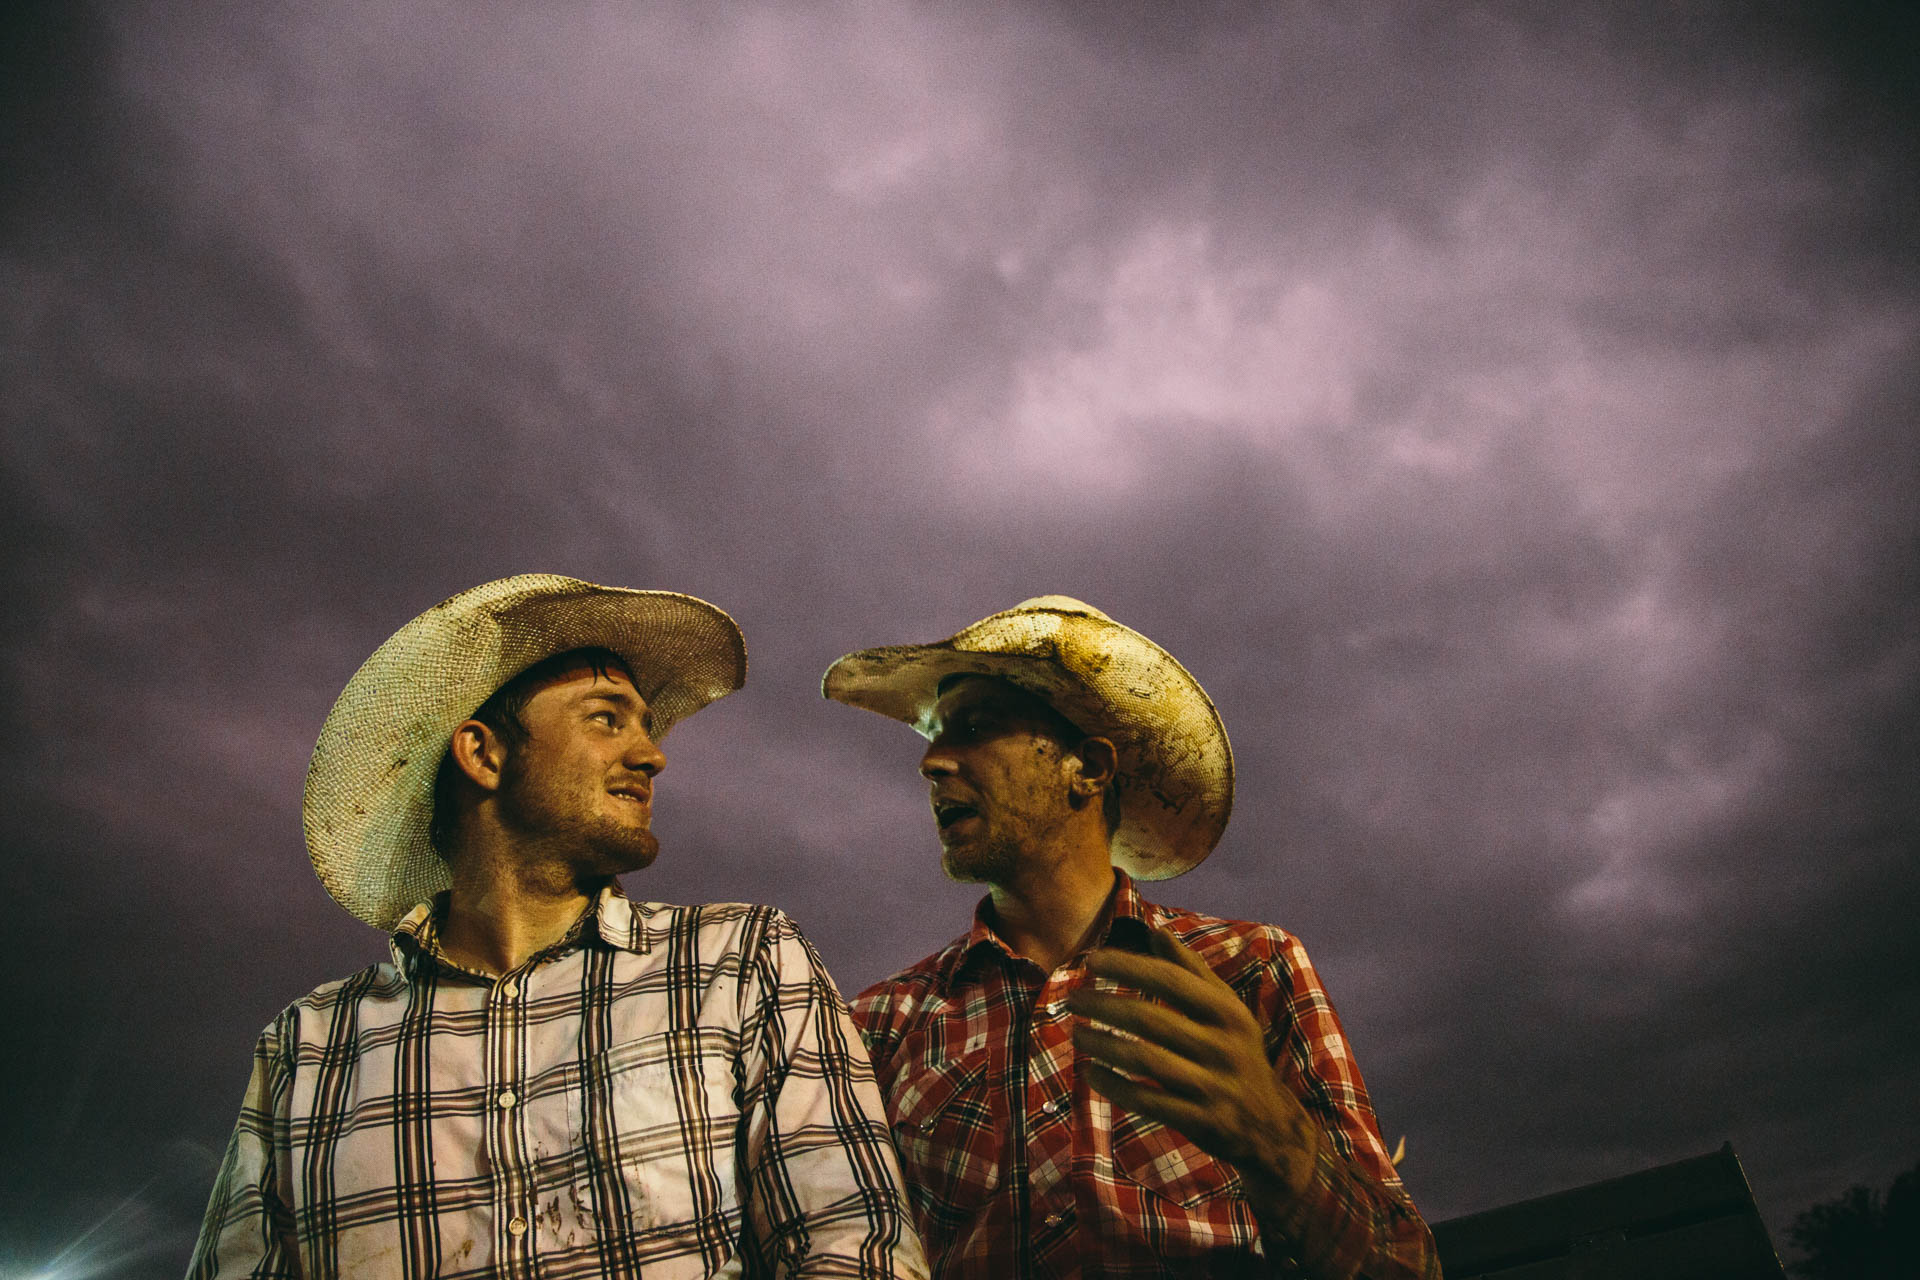 two-cowboys-talk-rodeo-stormy-skies-western-shirts-covered-in-mud-night-a5179